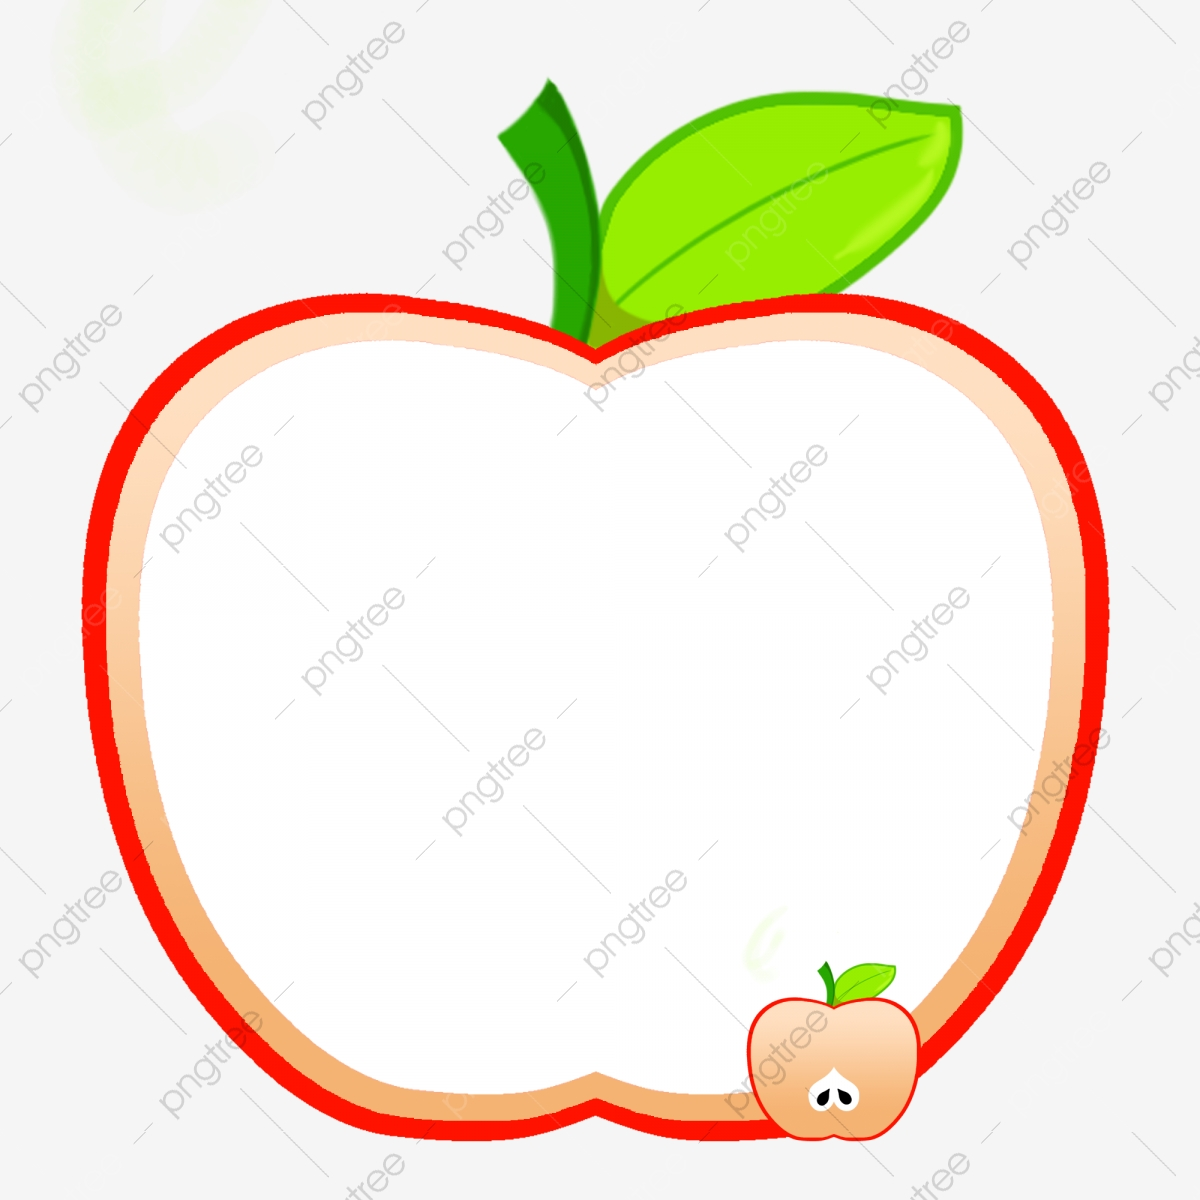 Red Apple Border Illustration Red Border Apple Border Green Leaves Png Transparent Clipart Image And Psd File For Free Download